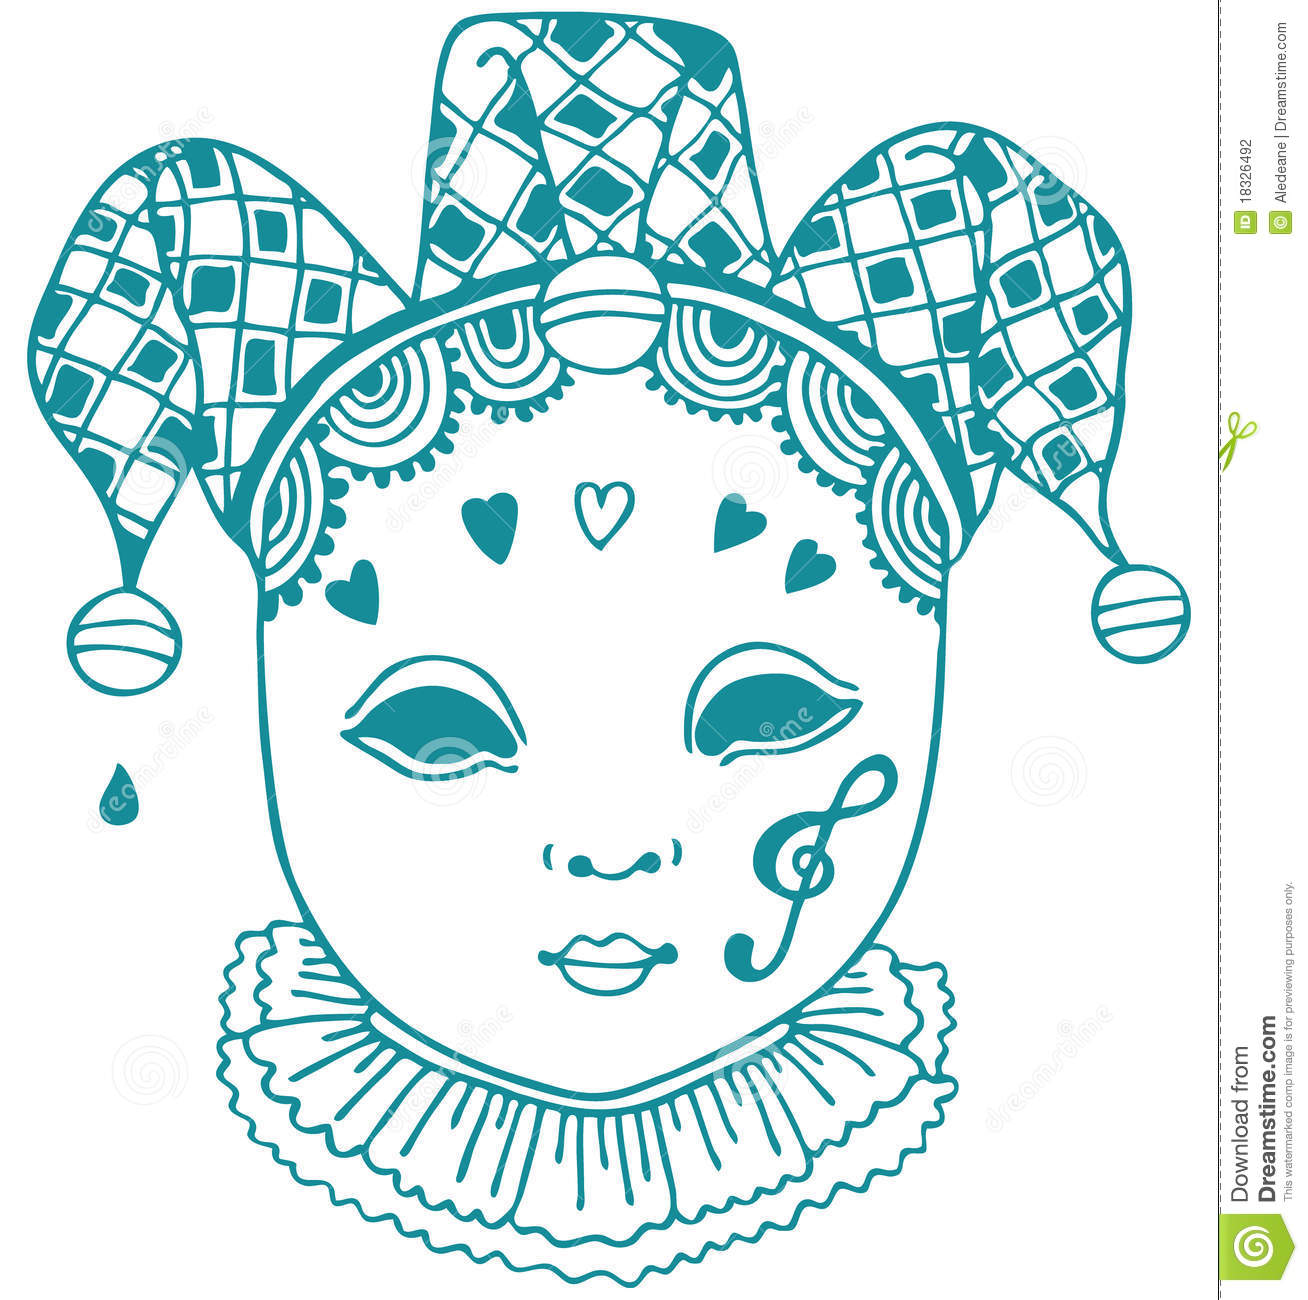 Harlequin teal clipart.